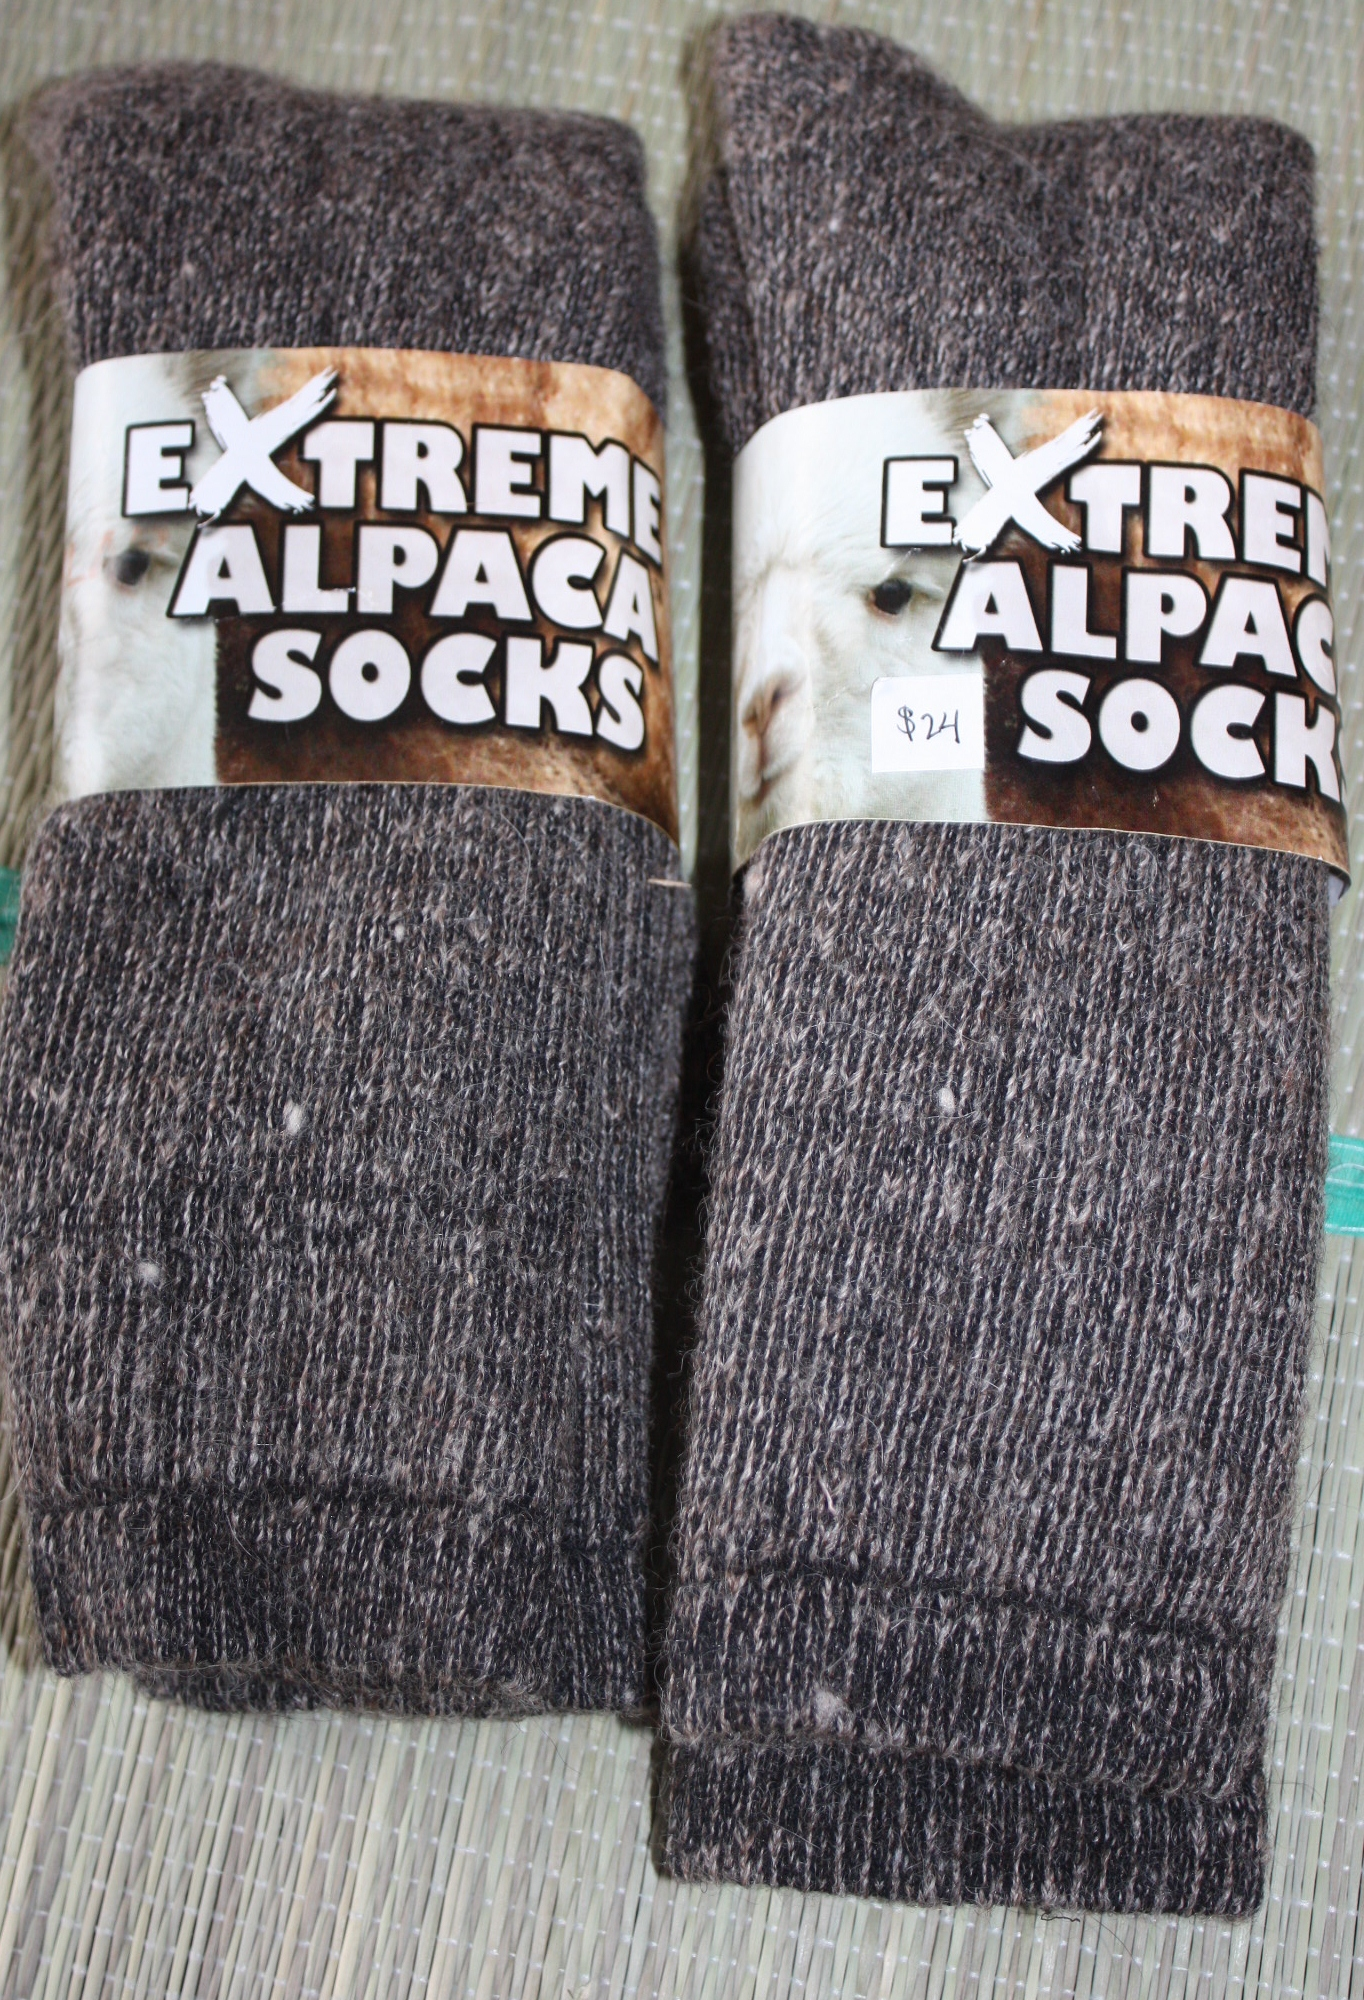 eb3080ca20547 Thick warm socks made from a high alpaca count blend (this allows the sock  to maintain shape). Perfect for winter time! Alpaca is warmer than wool and  ...